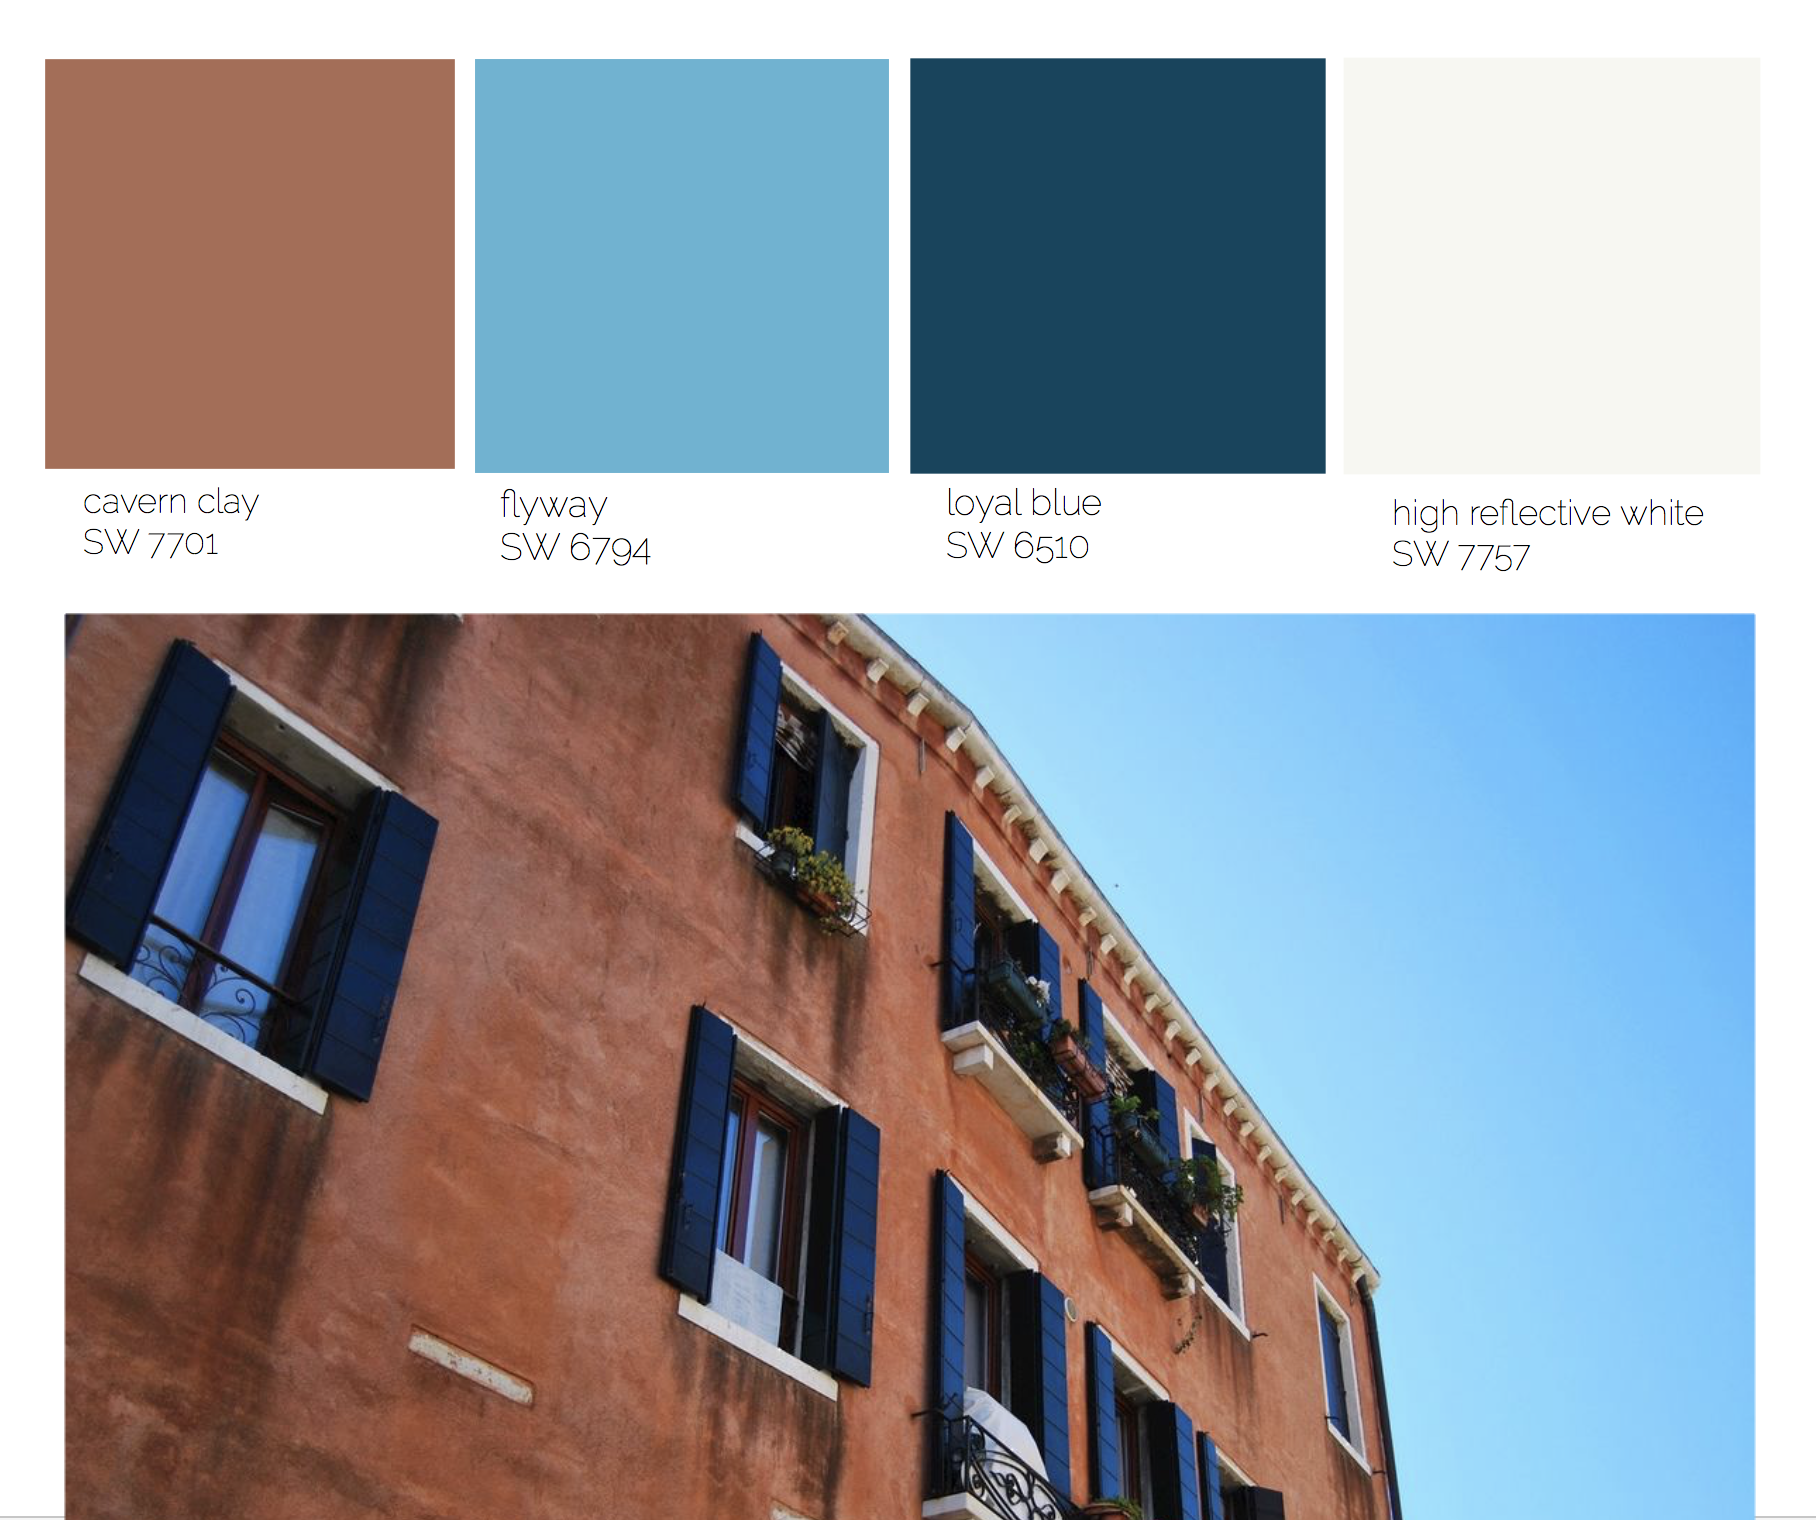 cavern clay sherwin williams color of the year